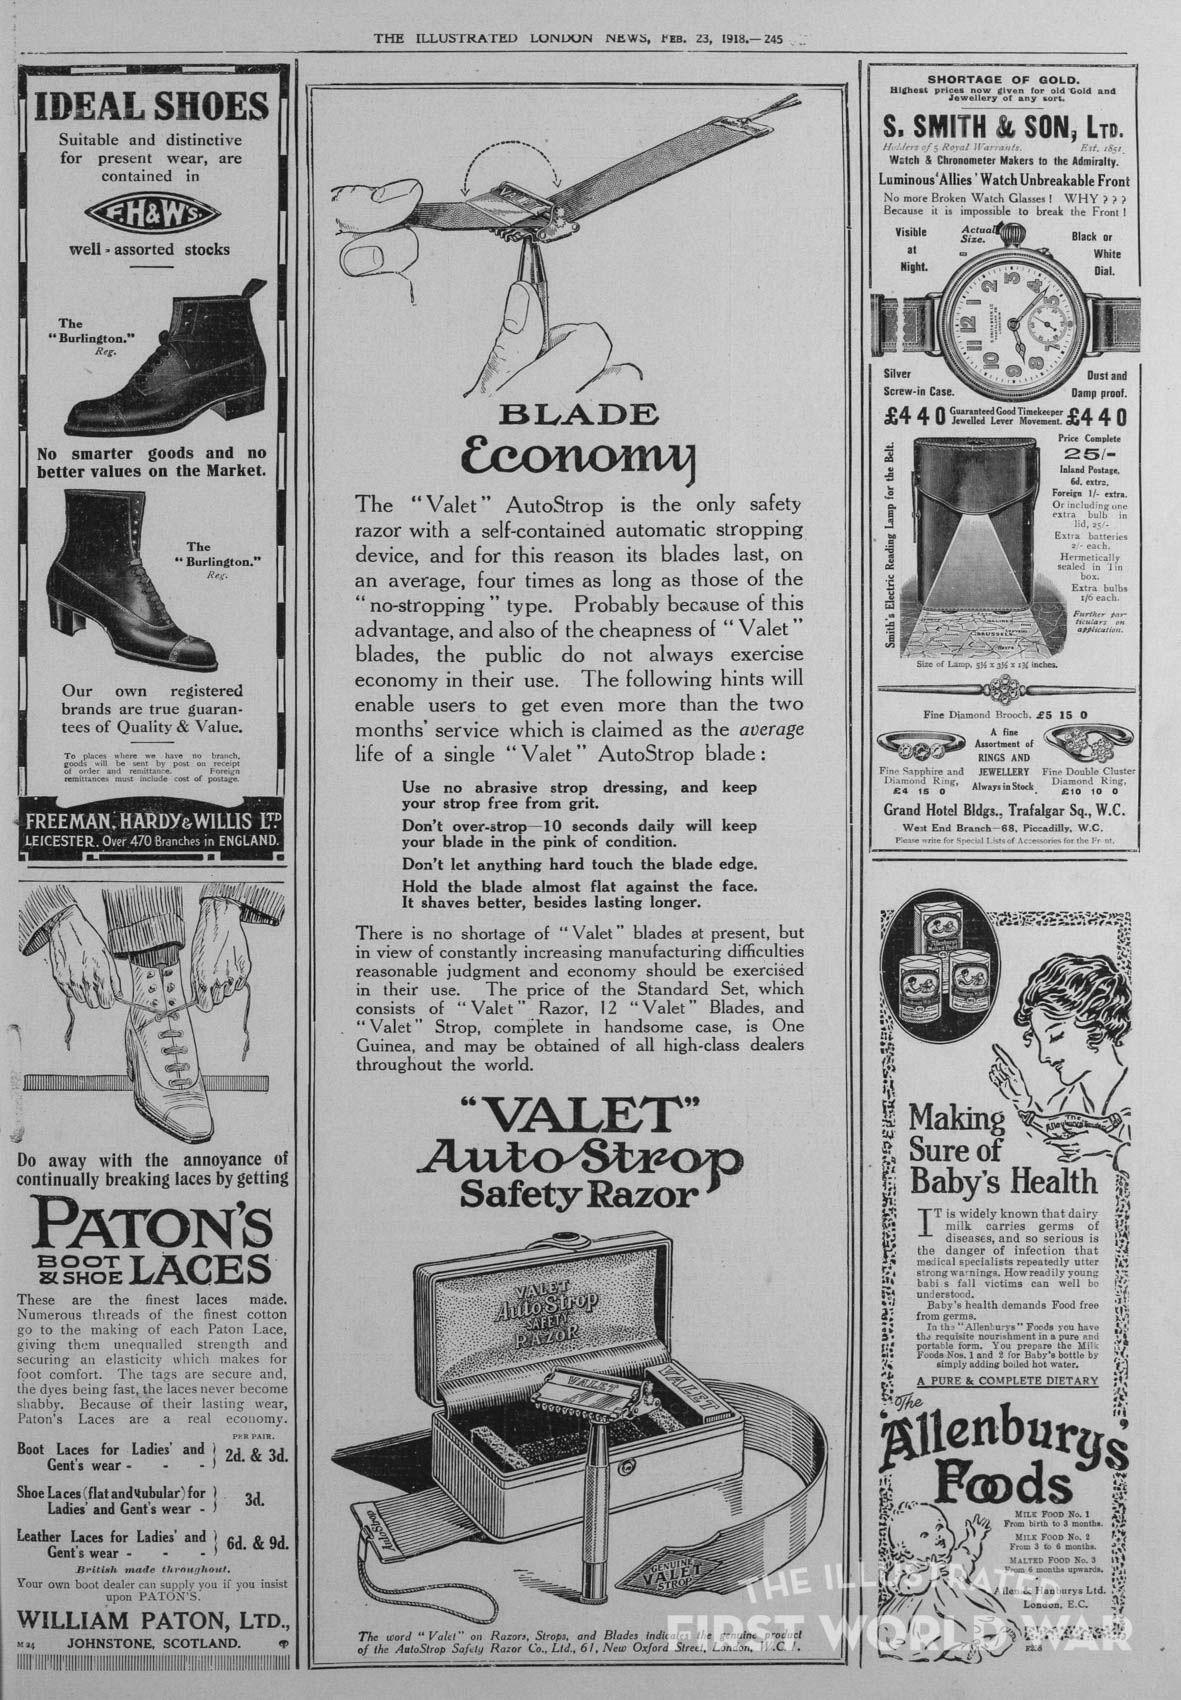 """Thanks to this site, I was able to accurately identify a handful of old shoelaces in a box... And after searching for """"plastic aglet history"""" for what feels like an eternity it is no longer a real word either. At least this site is awesome! Paton's Boot & Shoe Laces 